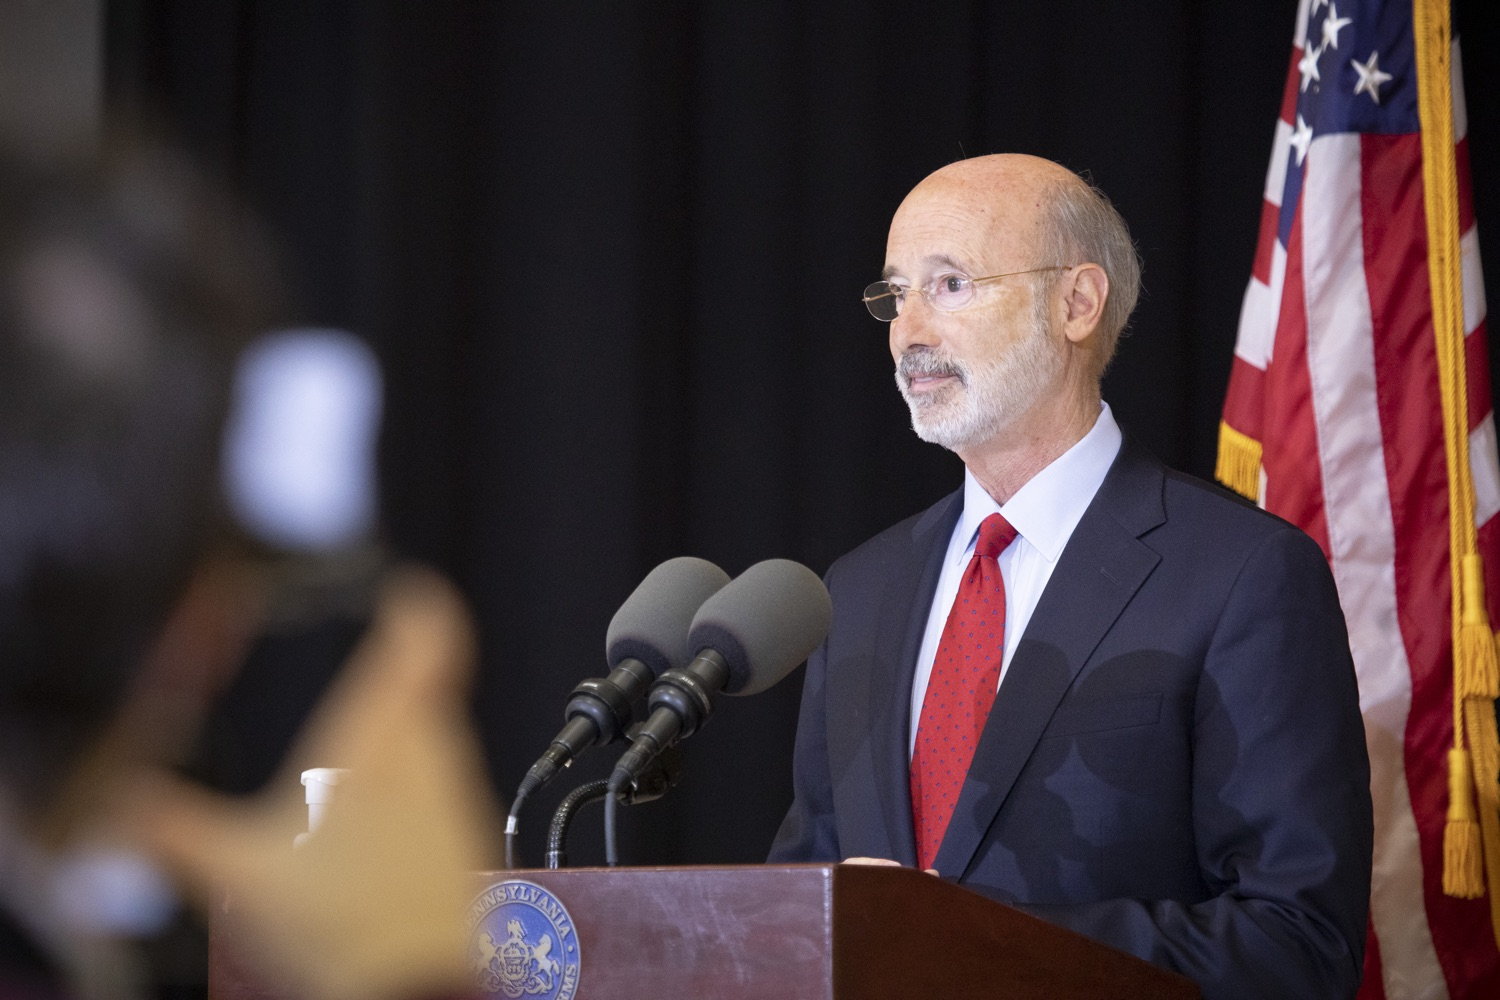 """<a href=""""https://filesource.wostreaming.net/commonwealthofpa/photo/18310_gov_adult_use_cannabis_dz_011.jpg"""" target=""""_blank"""">⇣Download Photo<br></a>Governor Tom Wolf speaks to the press.Governor Tom Wolf visited The Mountain Center in Tobyhanna, Monroe County today to talk about the economic growth potential and restorative justice benefits of legalizing adult-use cannabis, something the state General Assembly has not yet done despite multiple requests from the governor and Lieutenant Governor John Fetterman to take up legislation this fall.  Tobyhanna, PA  October 13, 2020"""